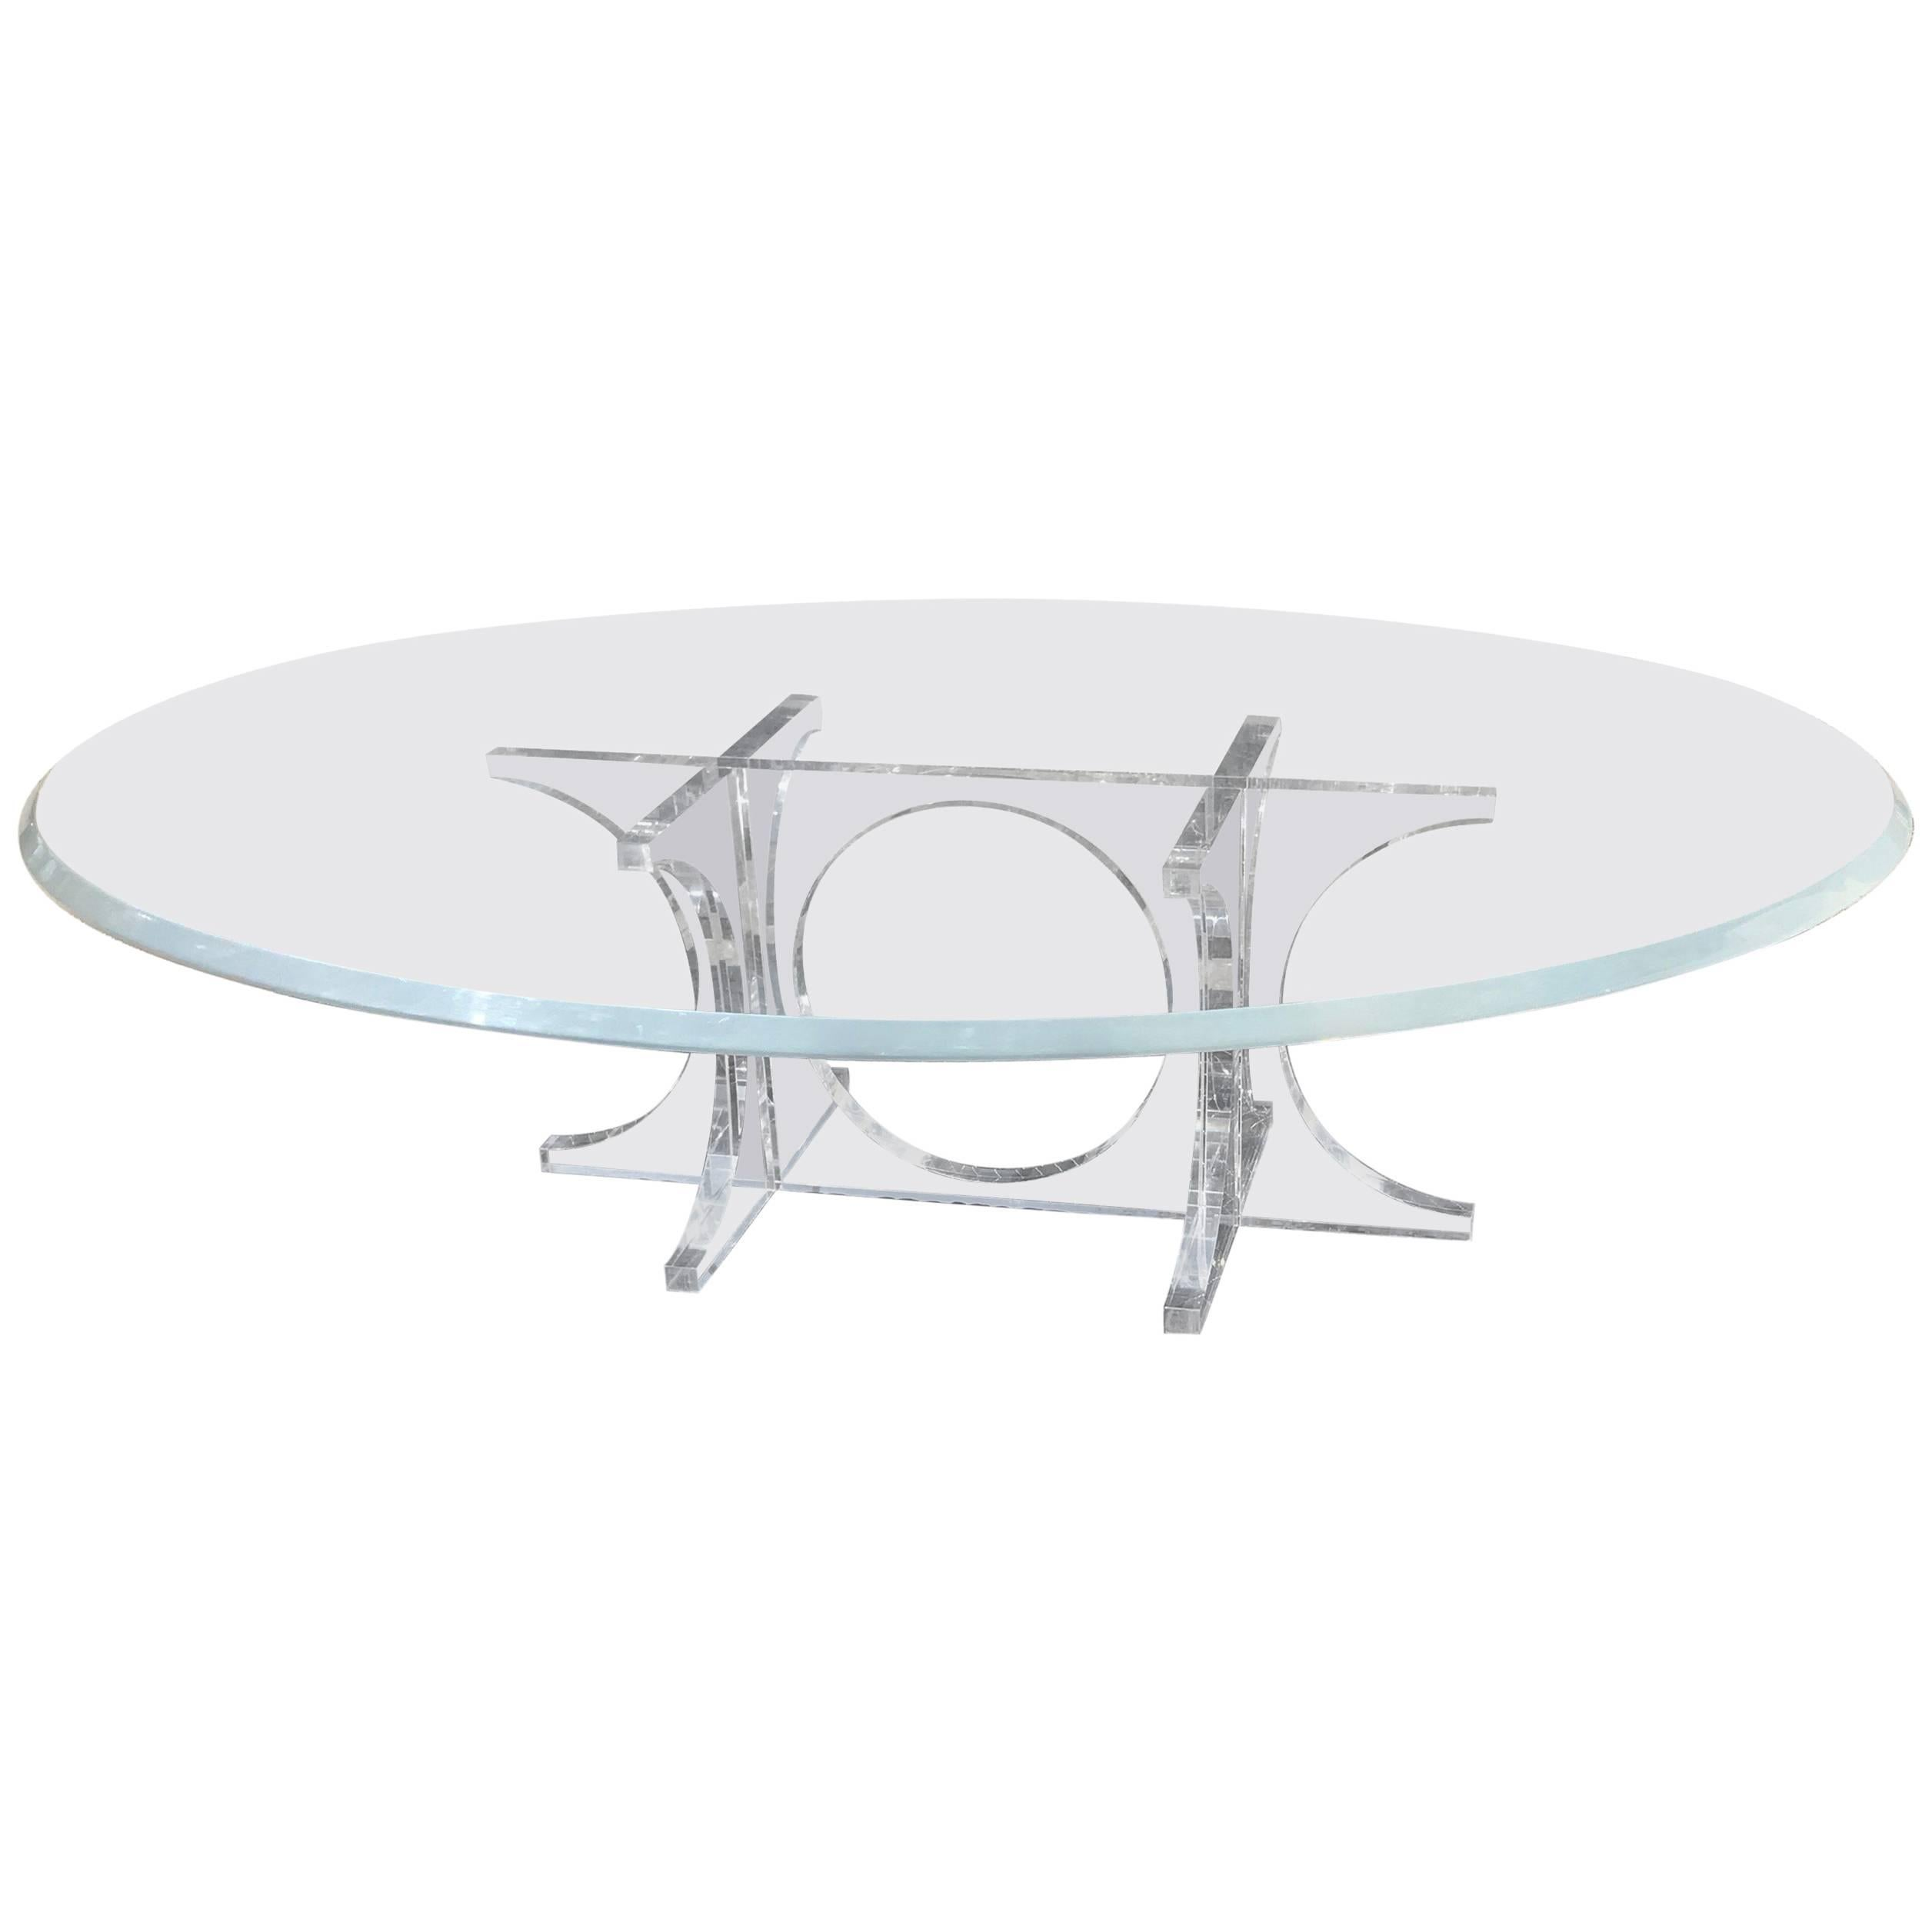 Monumental Mid Century Modern Oval Lucite Cocktail Table Or Coffee Table  For Sale